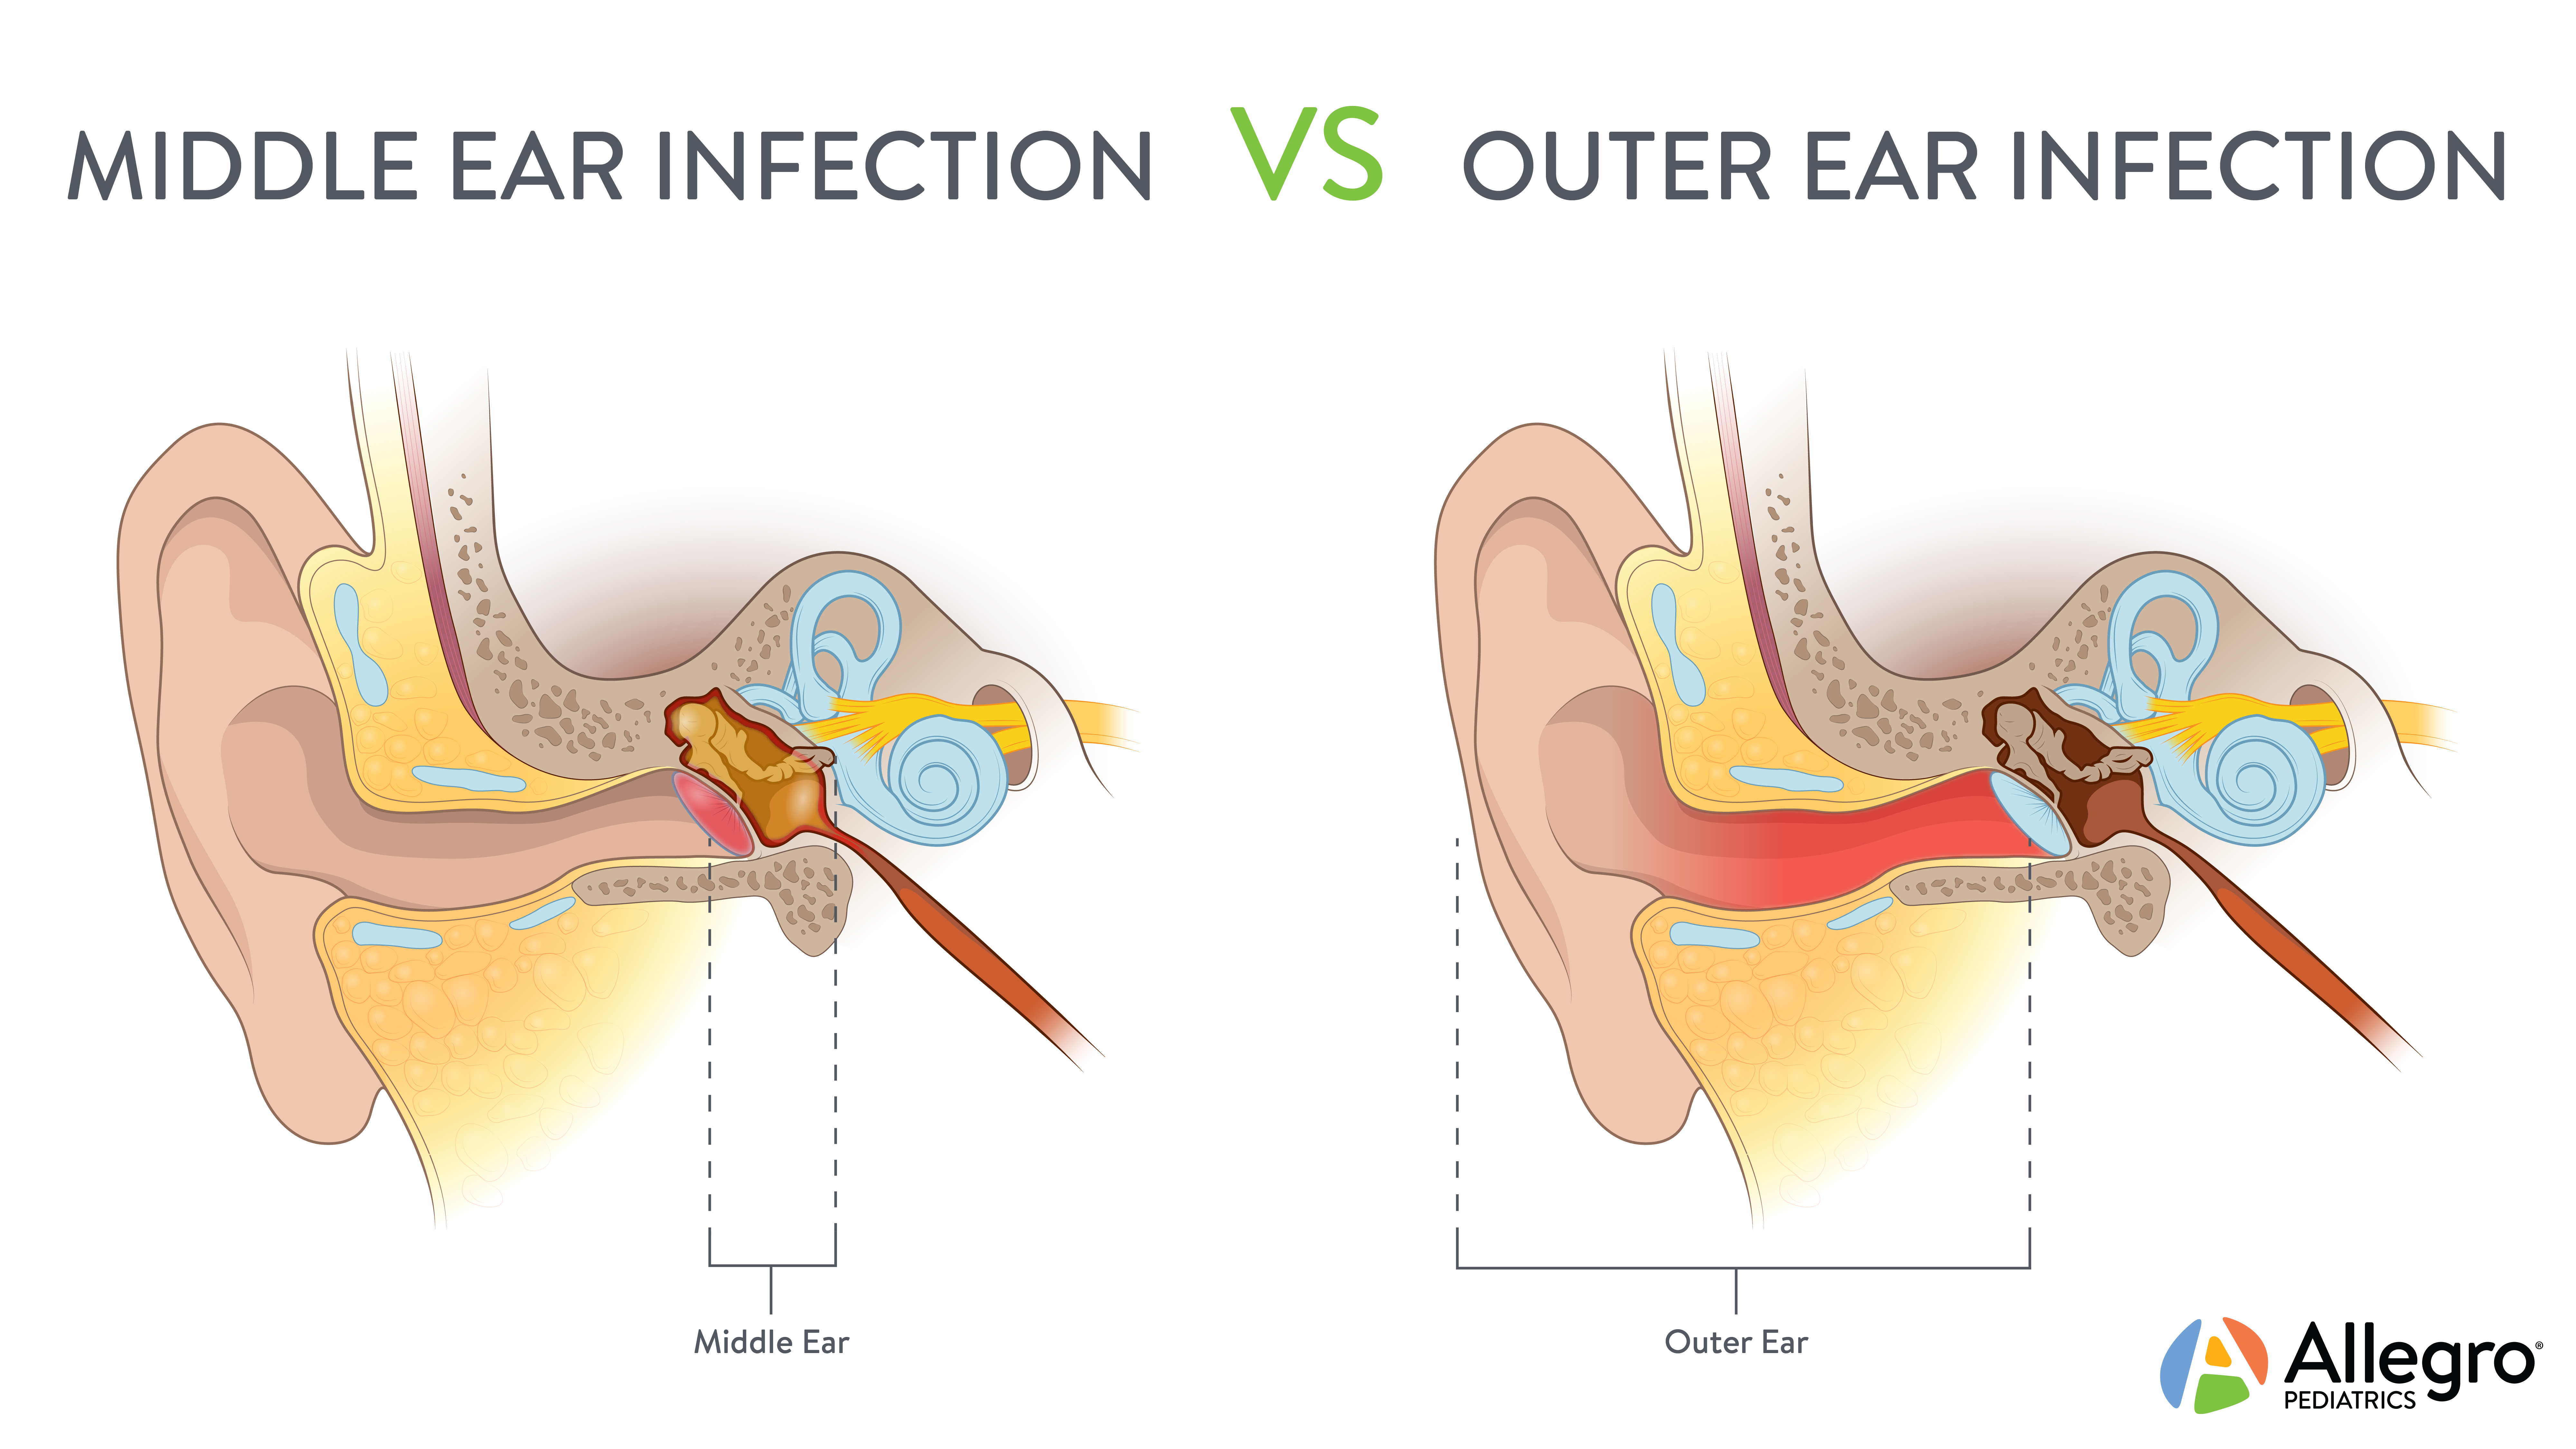 earinfection_middlevsouter_logo.jpg